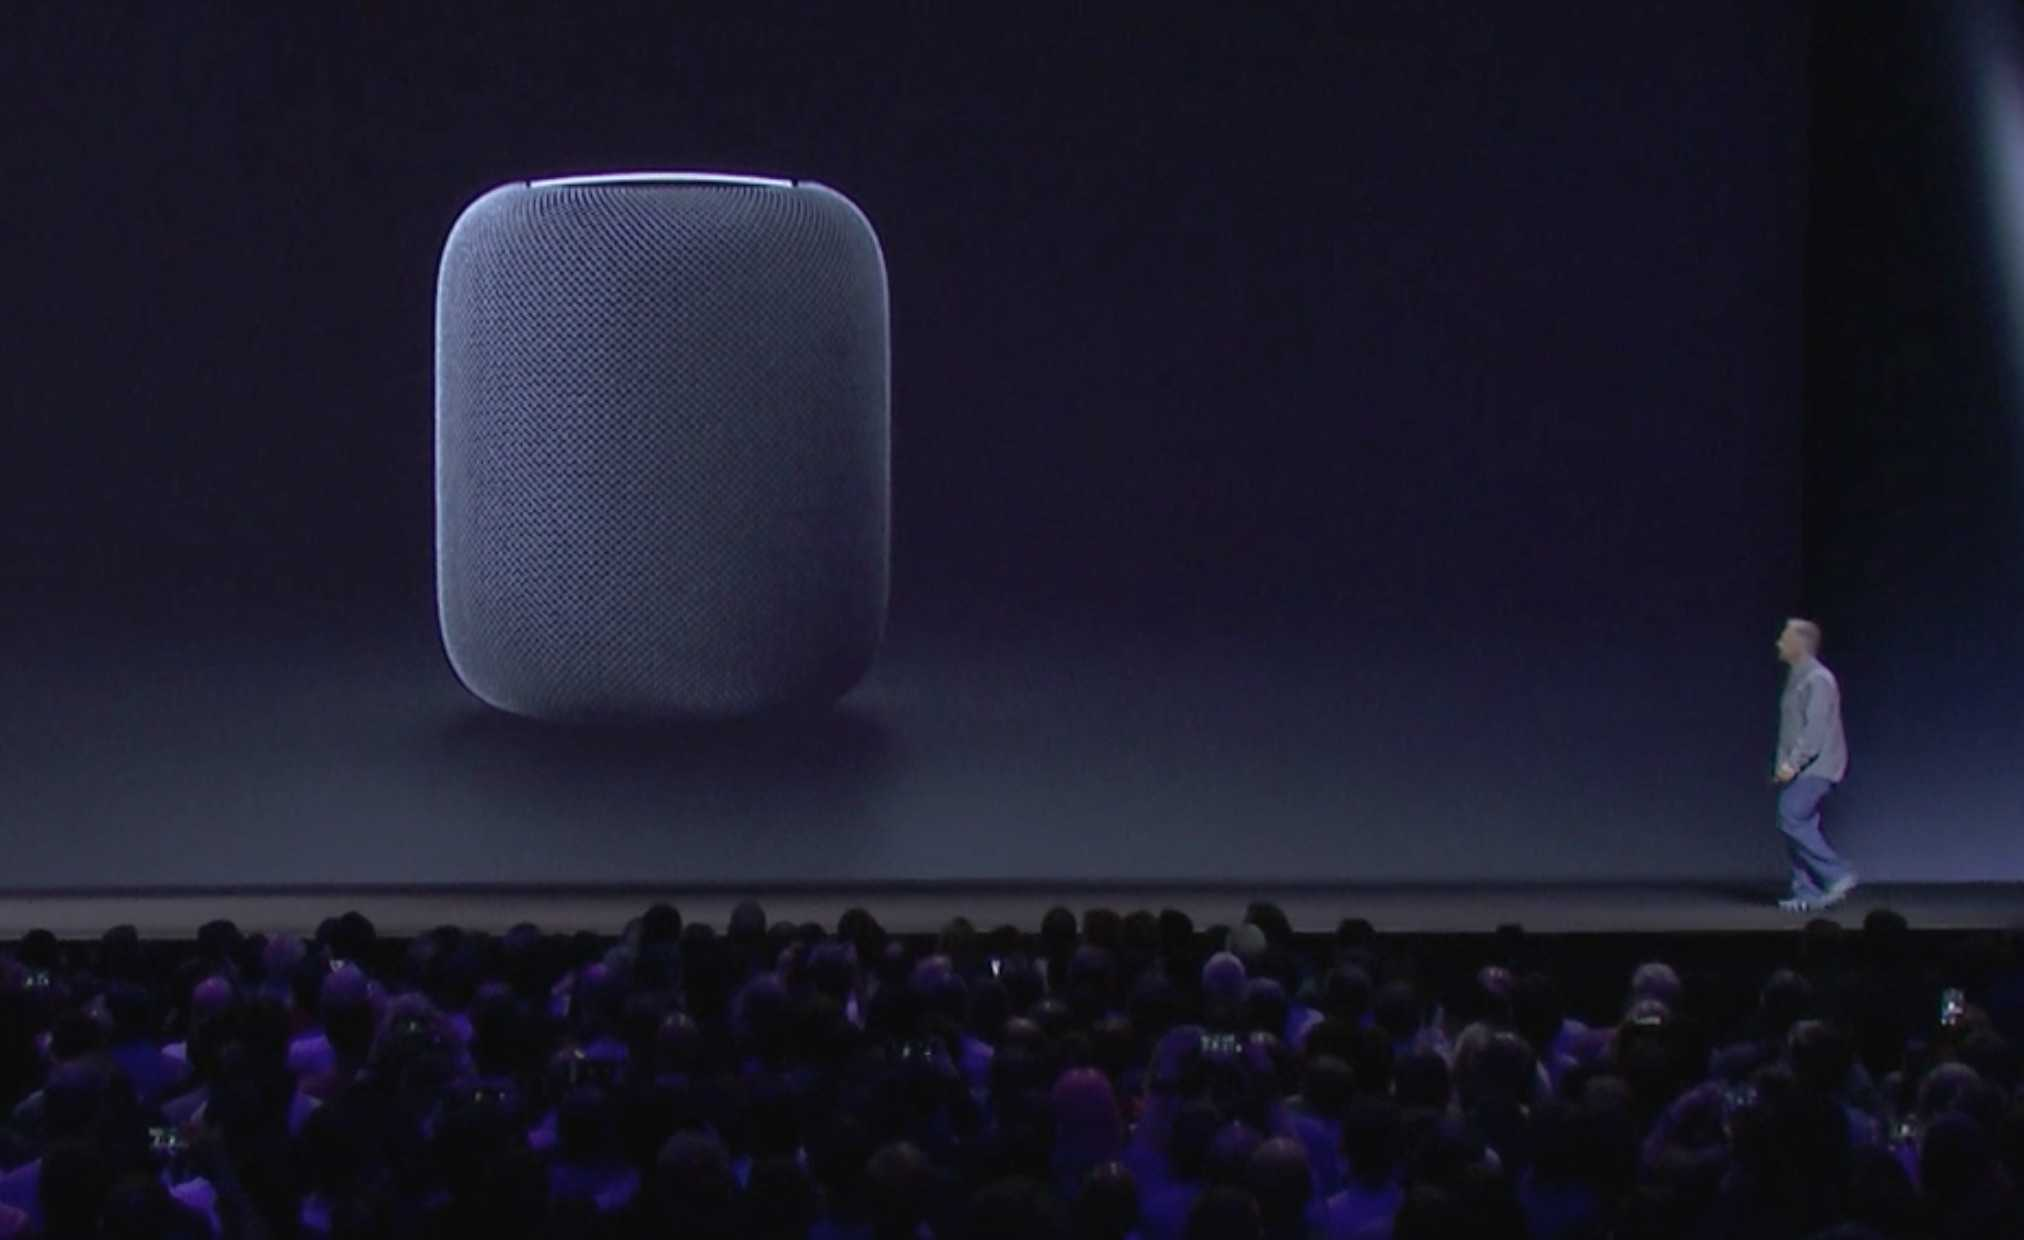 Phil Schiller gives the world a sneak peek at the HomePod during WWDC 2017.